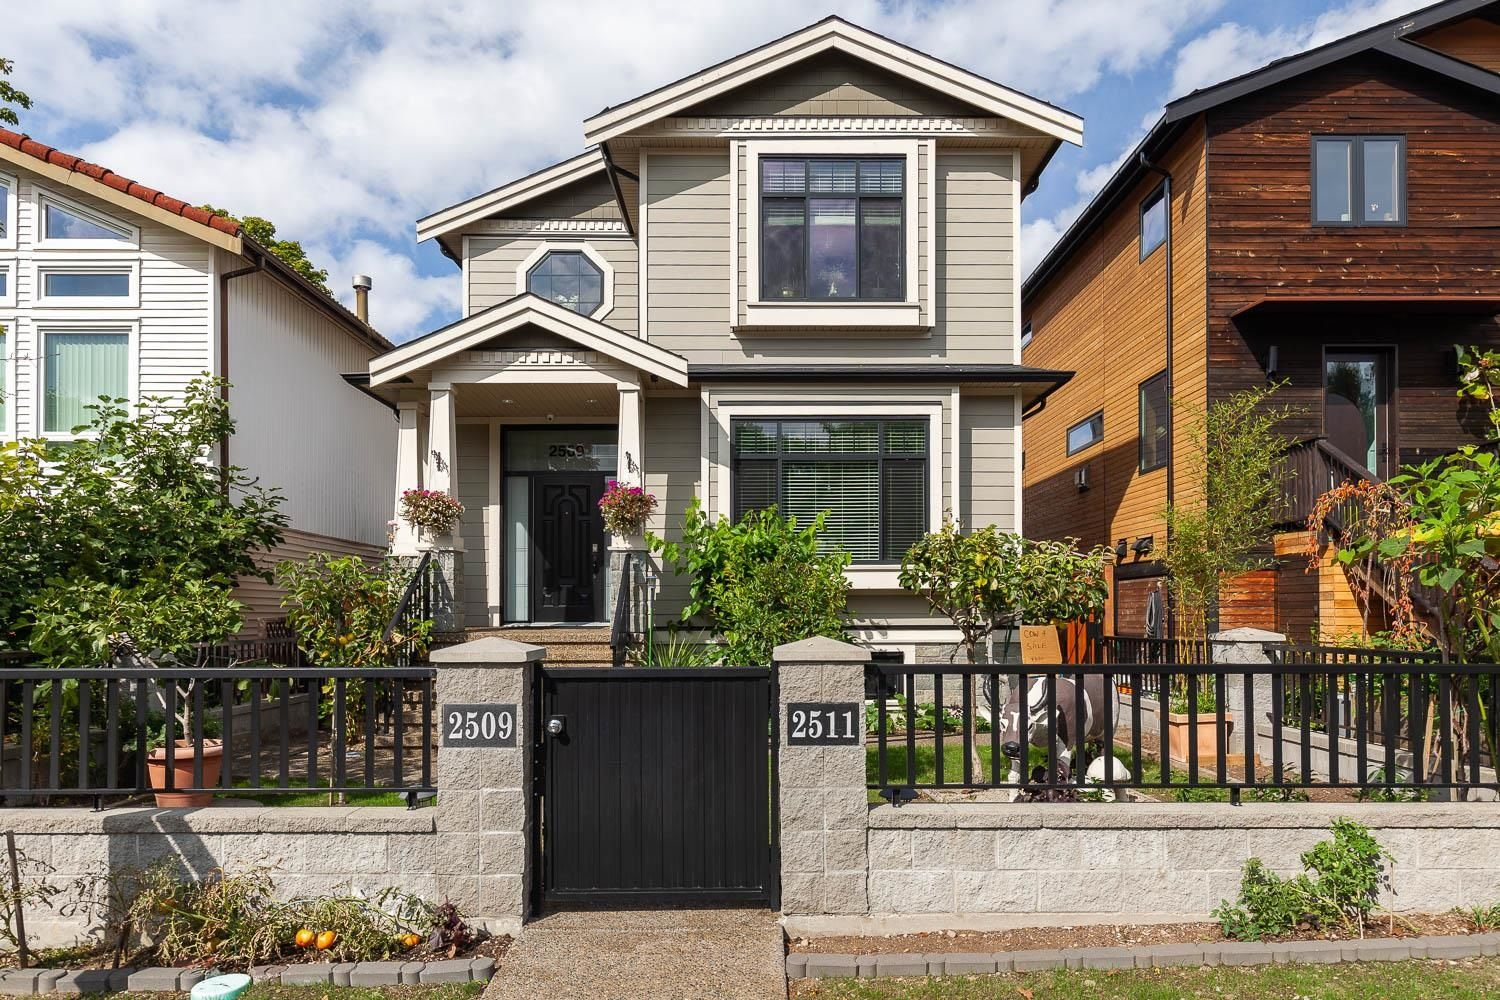 Main Photo: 2509 MCGILL Street in Vancouver: Hastings Sunrise House for sale (Vancouver East)  : MLS®# R2617108